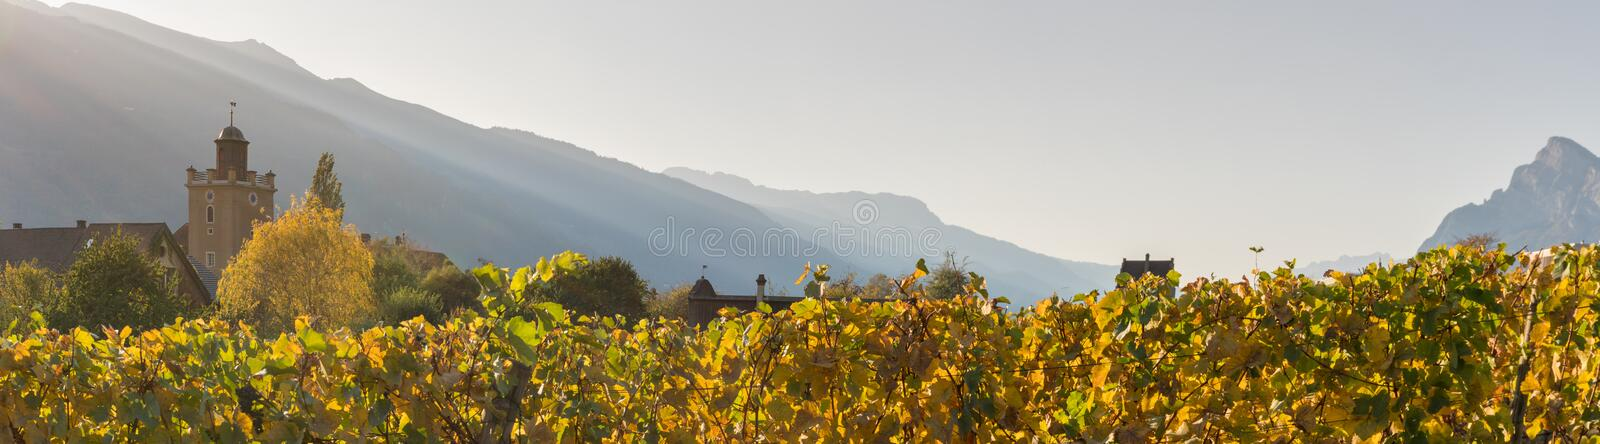 Panorama landscape with alpine village and golden vineyard under cloudless sunset sky with mountain silhouettes royalty free stock photography